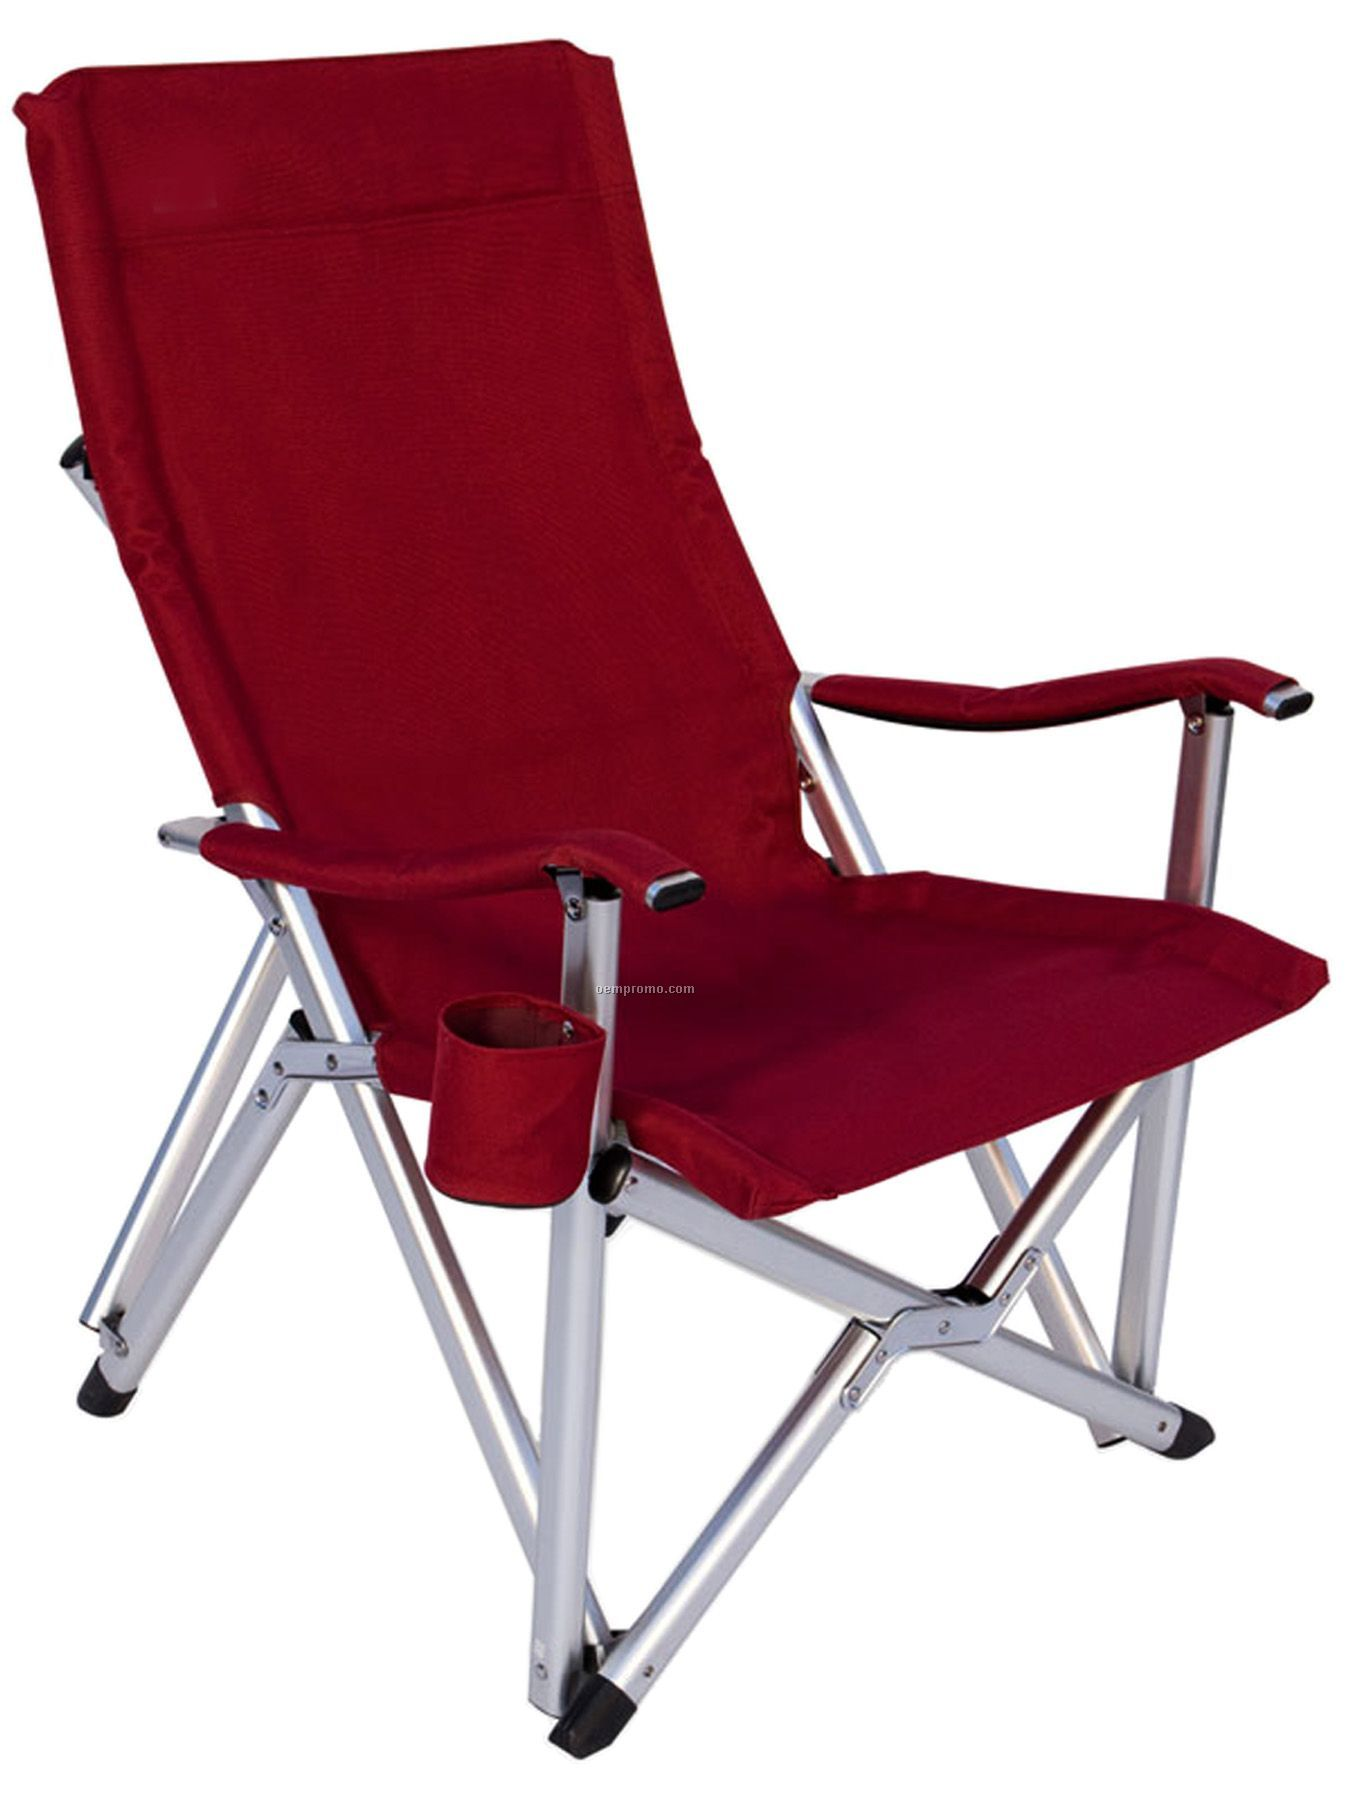 Folding Arm Chair Imported Deluxe Folding High Back Aluminum Arm Chair W 375